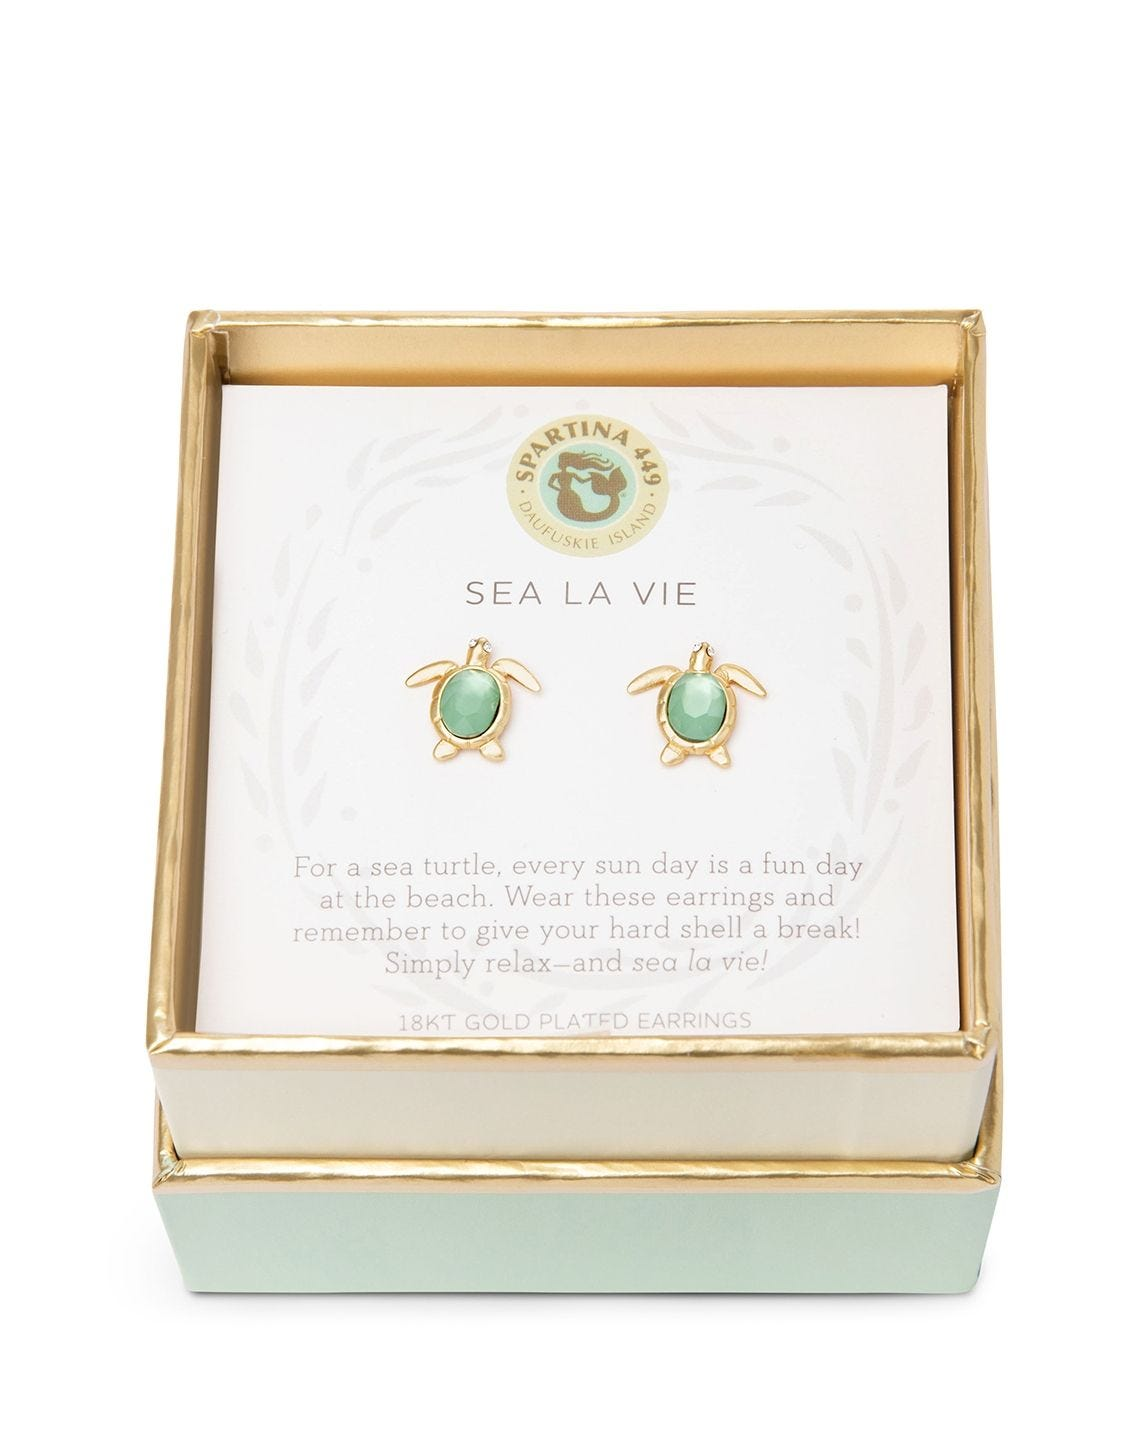 Sea La Vie Earrings